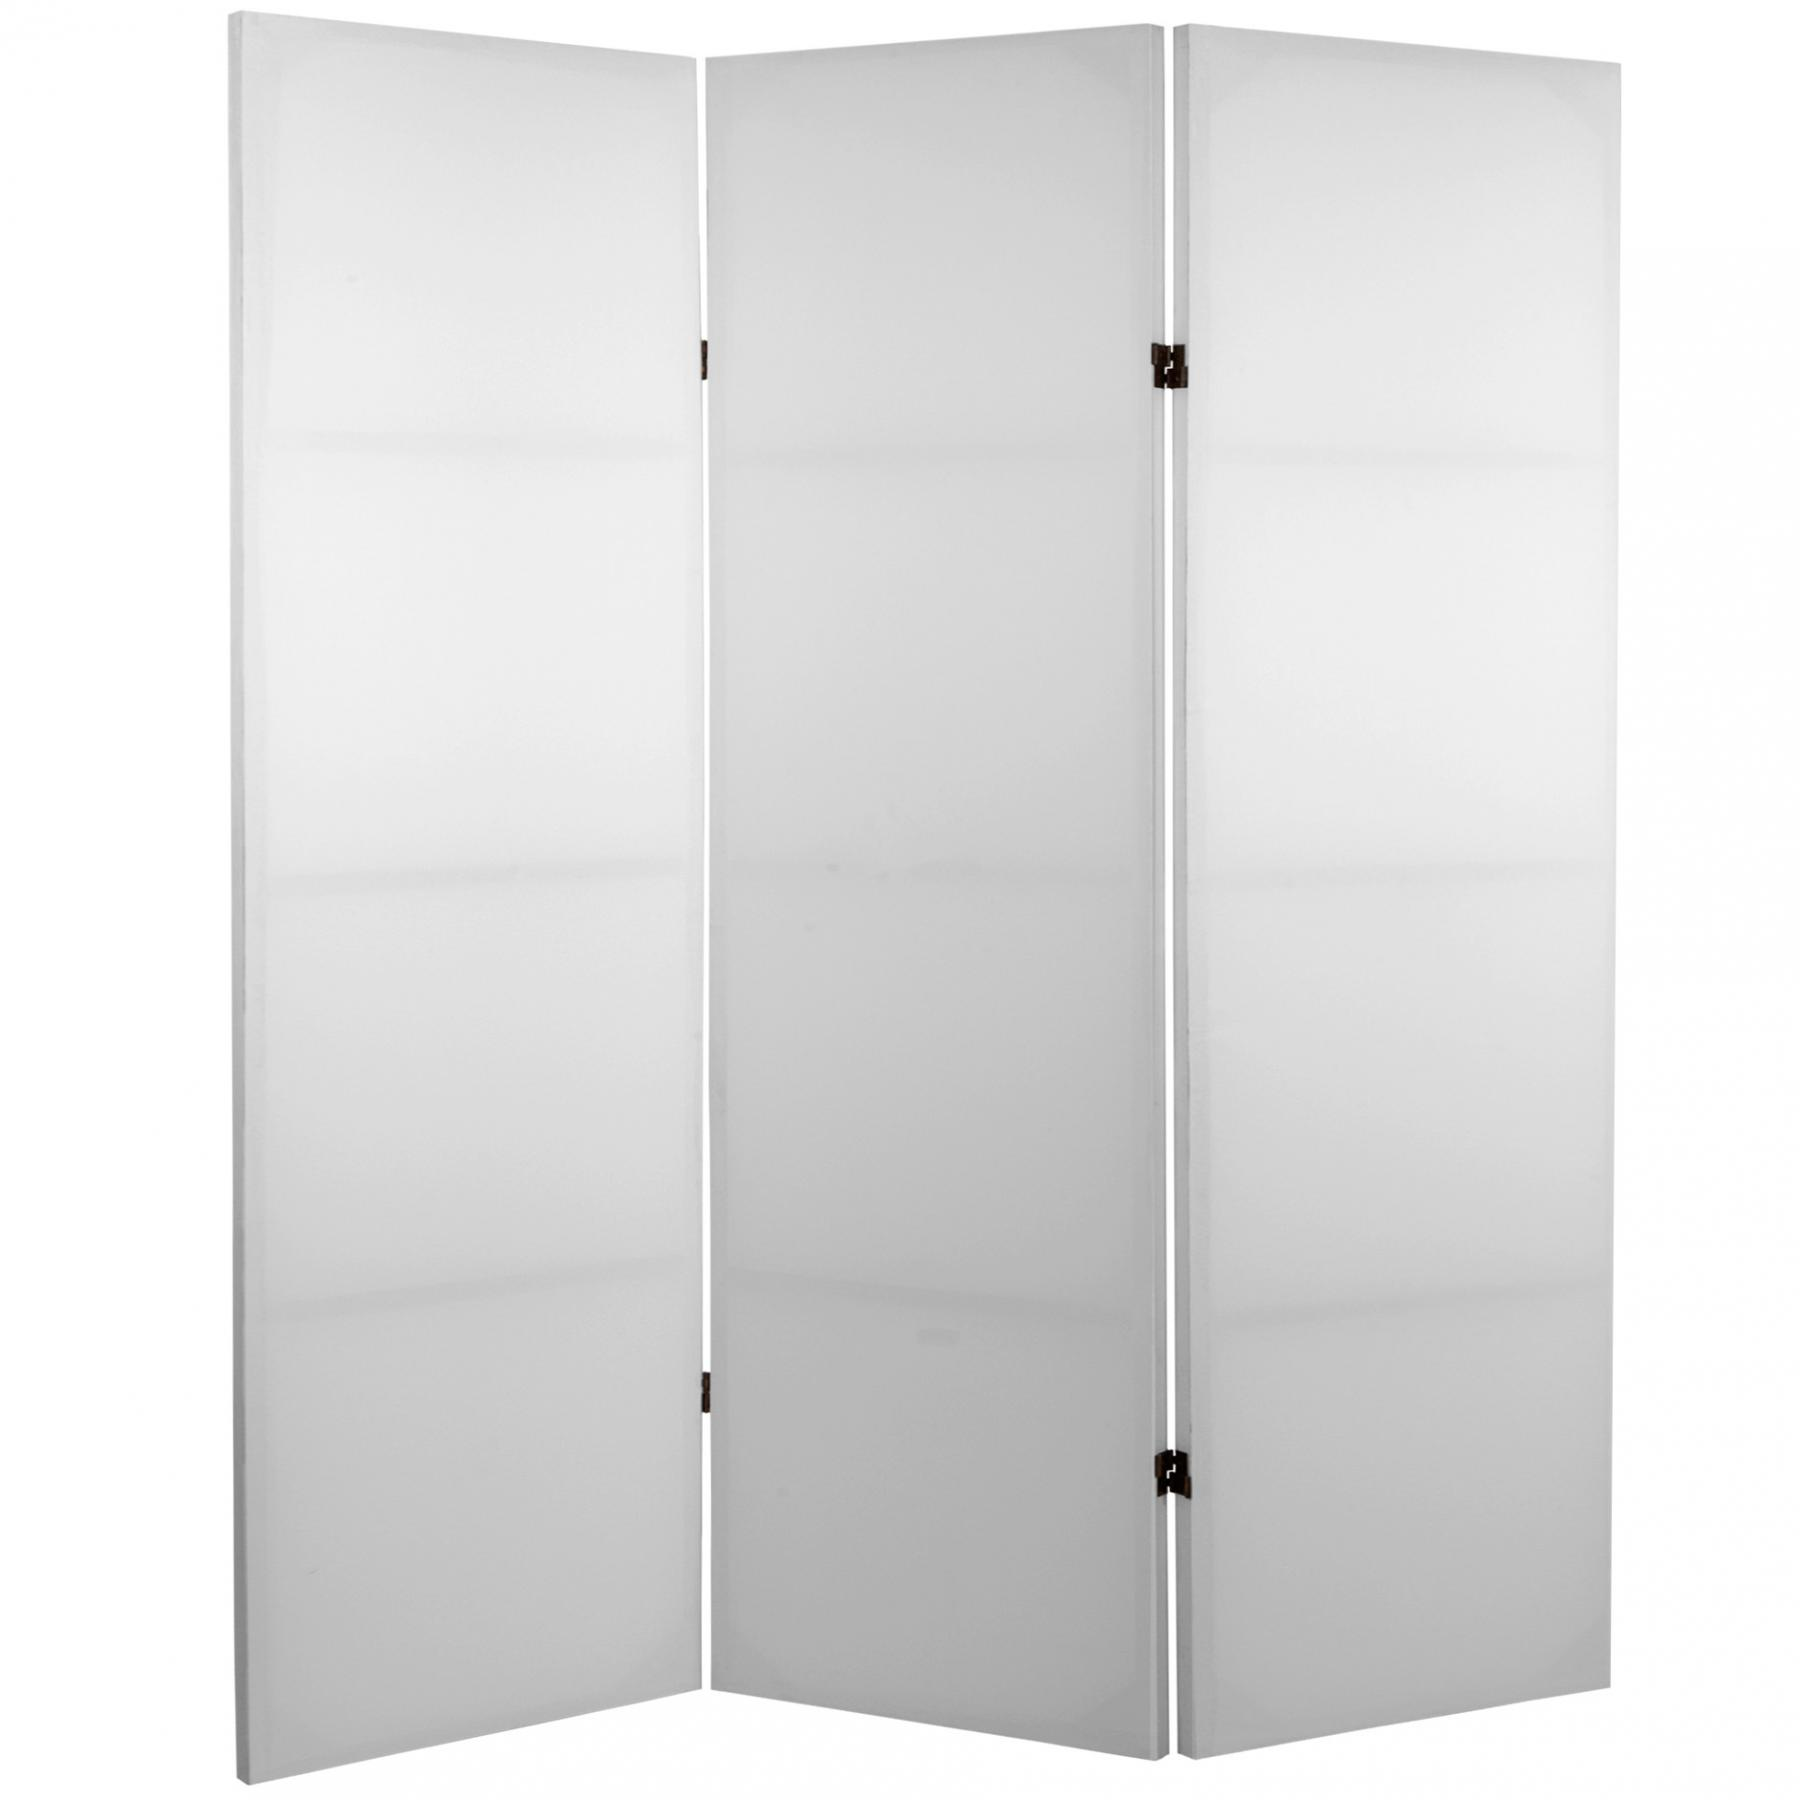 4 Ft Tall Do It Yourself Double Sided Canvas Room Divider